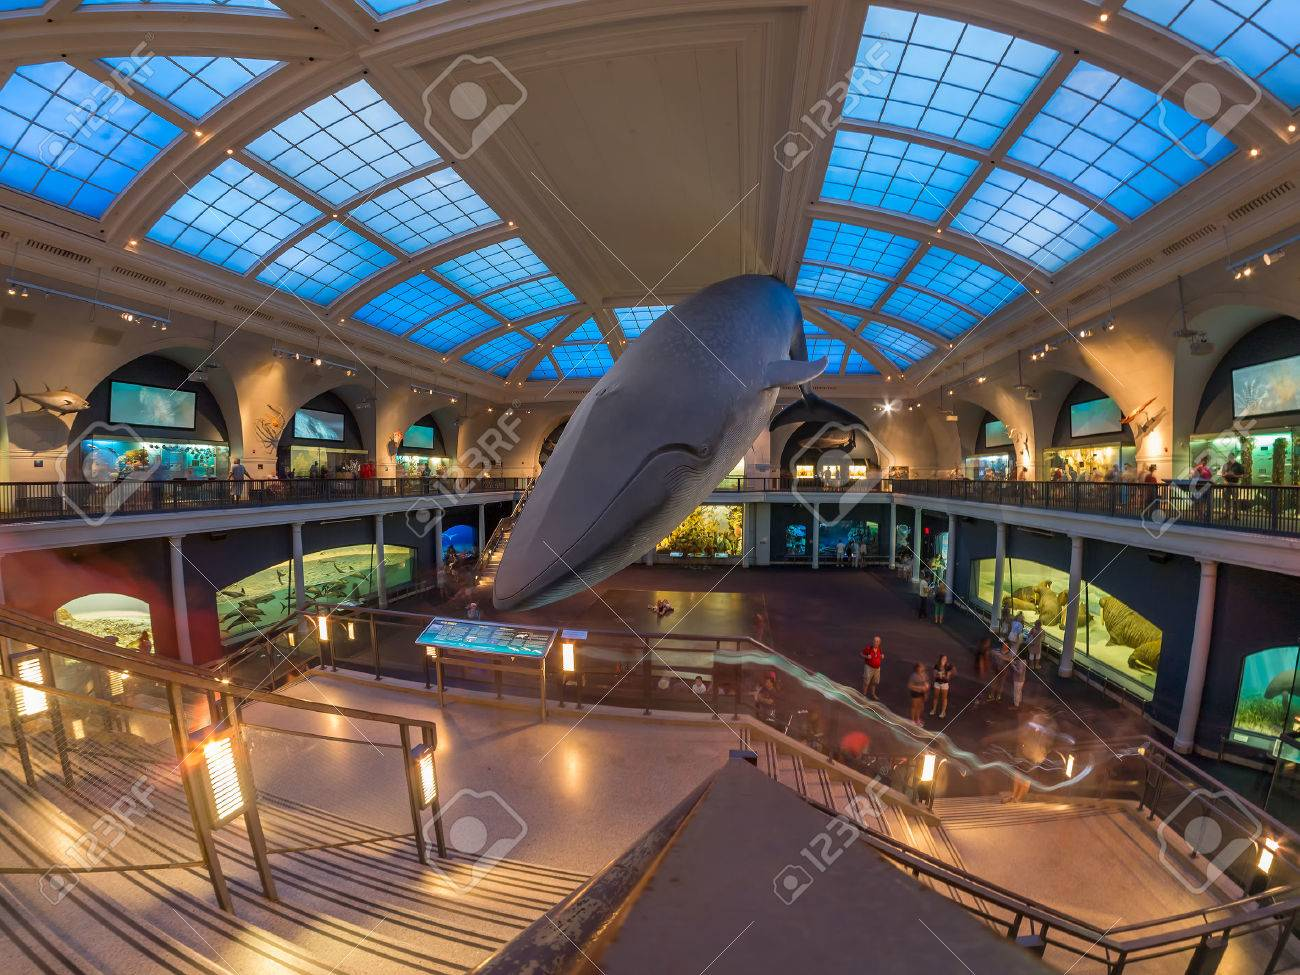 Marine life room at the American Museum of Natural History in New York - 48942699